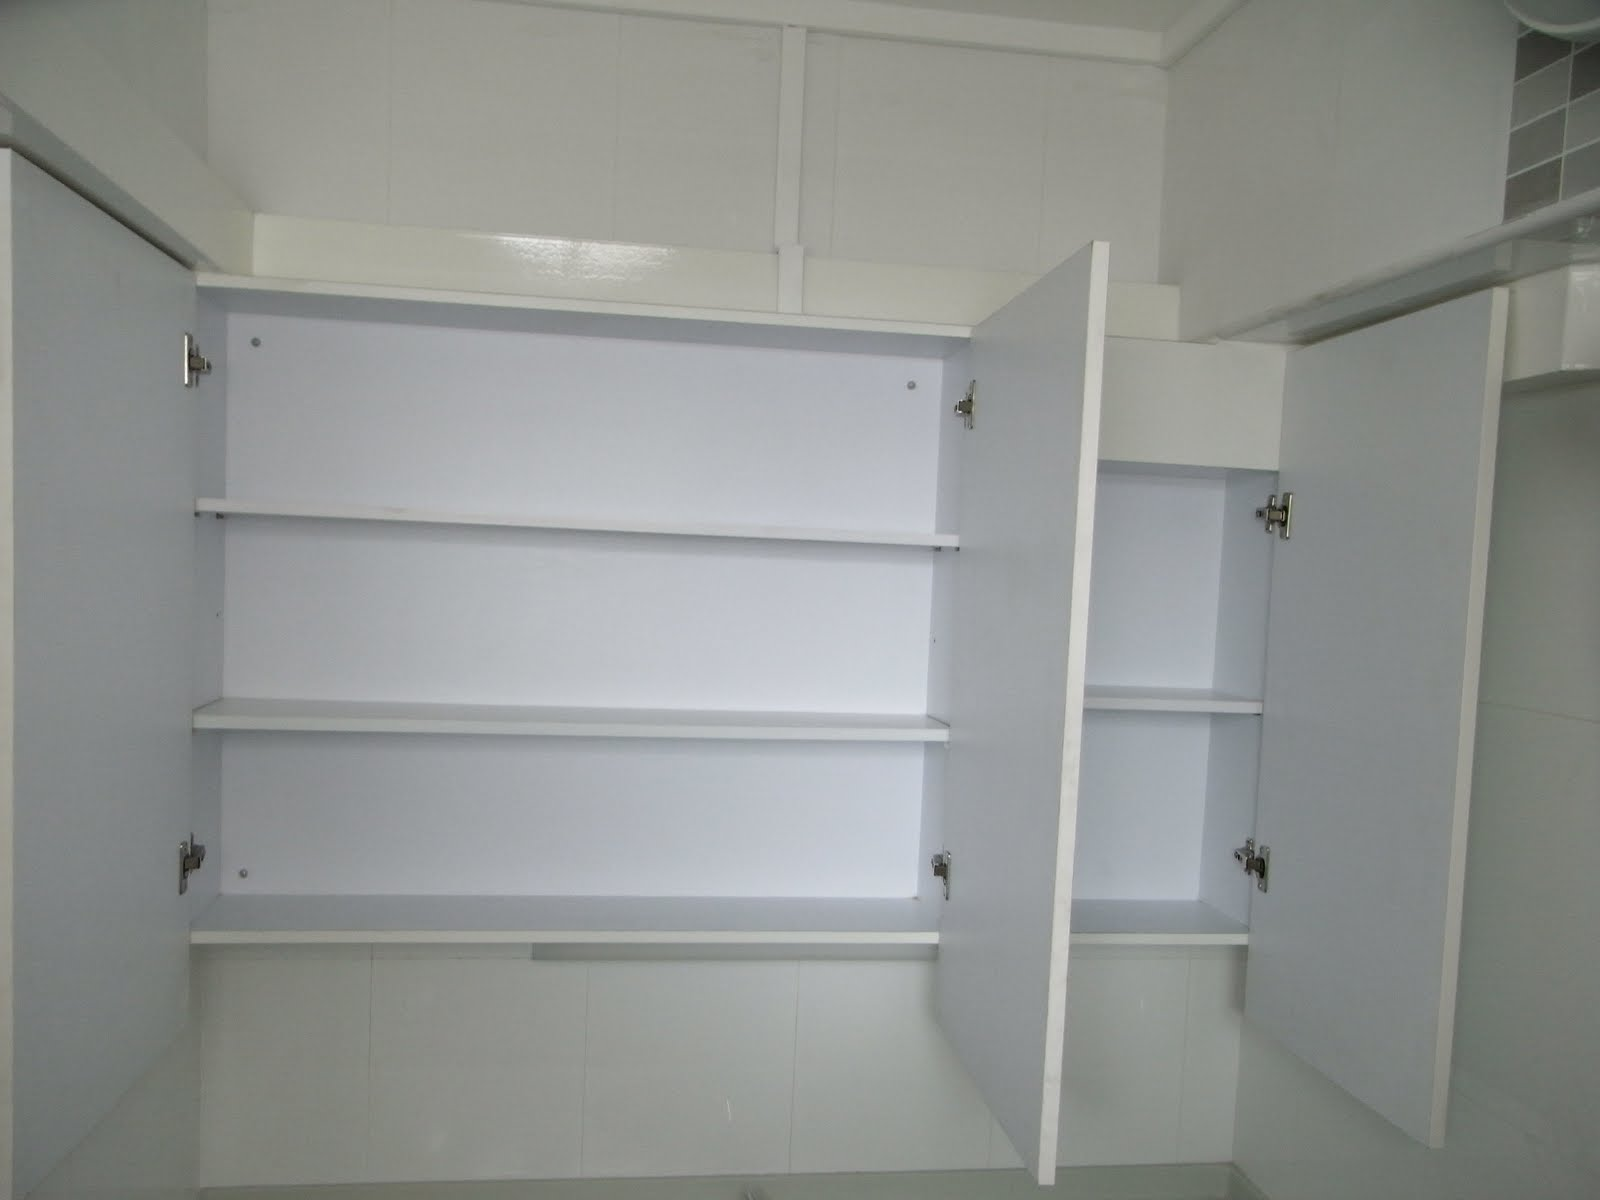 mounted cabiprovided storage space mirror finished cabidoors